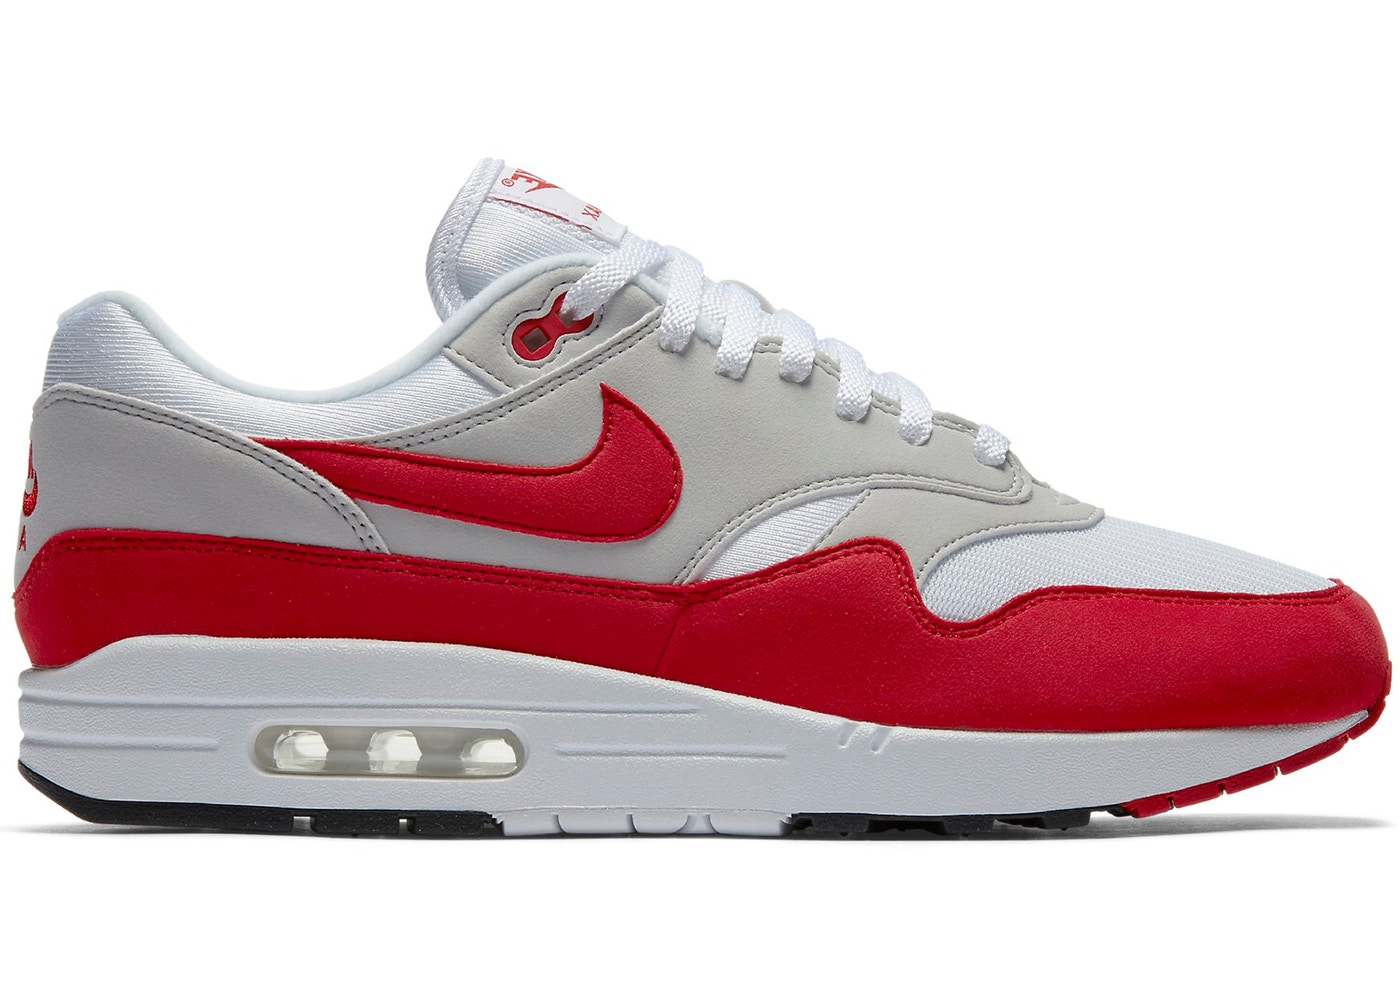 uk availability f6001 58a7b Air Max 1 Anniversary Red (2017) - 908375-100